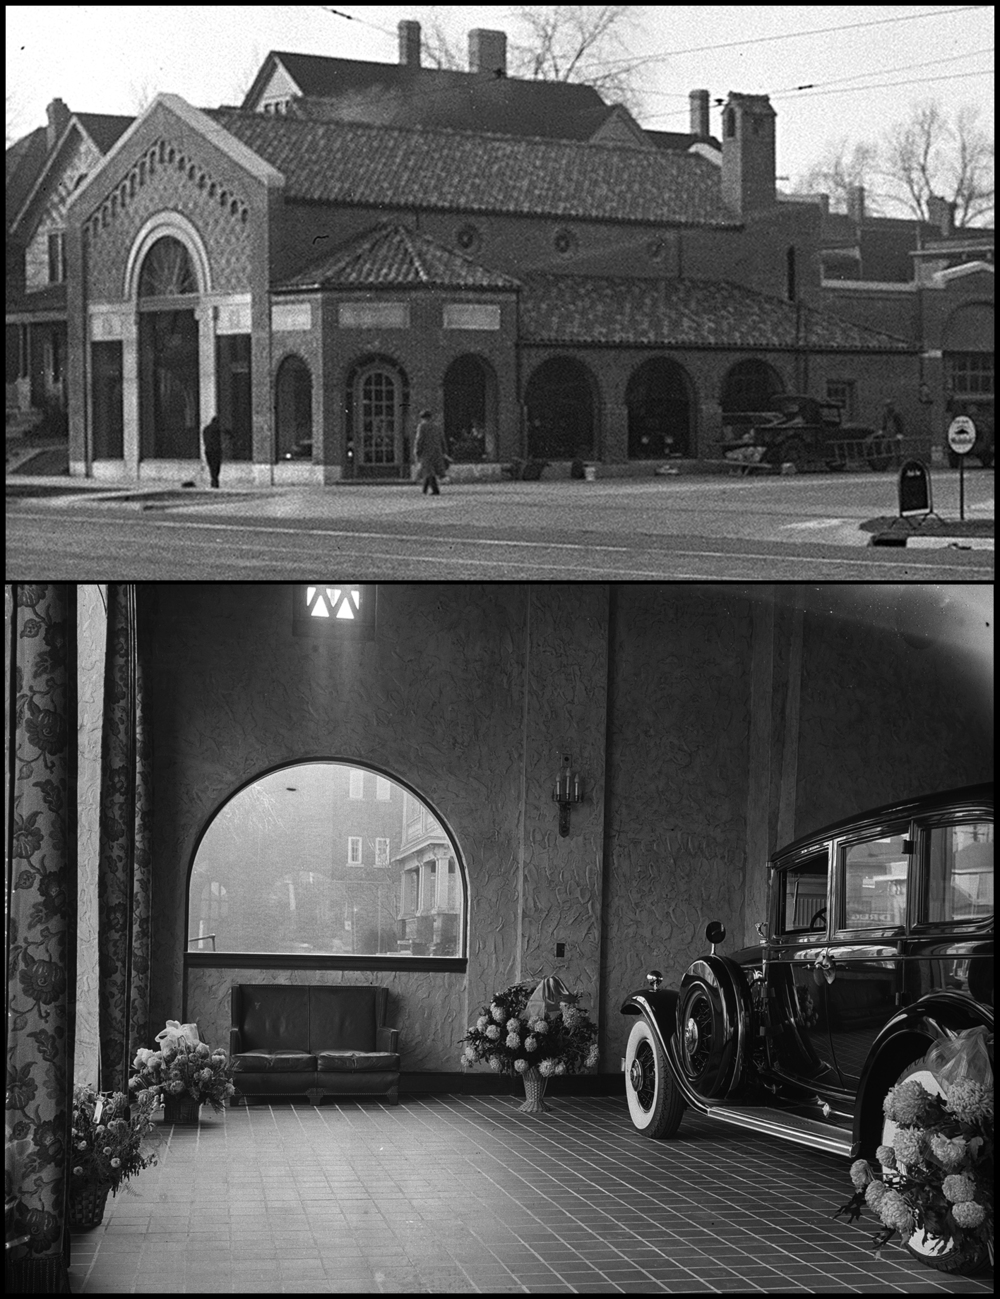 Two historical photographs from Illinois State Register glass plate negatives held in the Sangamon Valley Collection at Lincoln Library show two views of the Illini Motor Company's showroom, now home to the Pharmacy. At top, an exterior view taken circa 1930 shows workmen doing finishing touches around the brand new building. Organized in 1926 by Ralph Norton Baker Jr. and George Kreider, the dealership, which sold the Franklin, Cadillac, LaSalle, Oldsmobile and other models to a surrounding seven county area was first listed at this corner of S. Fifth and Cook St. beginning in 1930, according to the Springfield City Directory. At bottom, a brand new Cadillac is parked inside the showroom featuring large bouquets of flowers most likely sent by well-wishers after the dealership moved from their old showroom at 526-530 S. 5th. Both photos: Illinois State Register glass plate negative collection /Sangamon Valley Collection at Lincoln Library